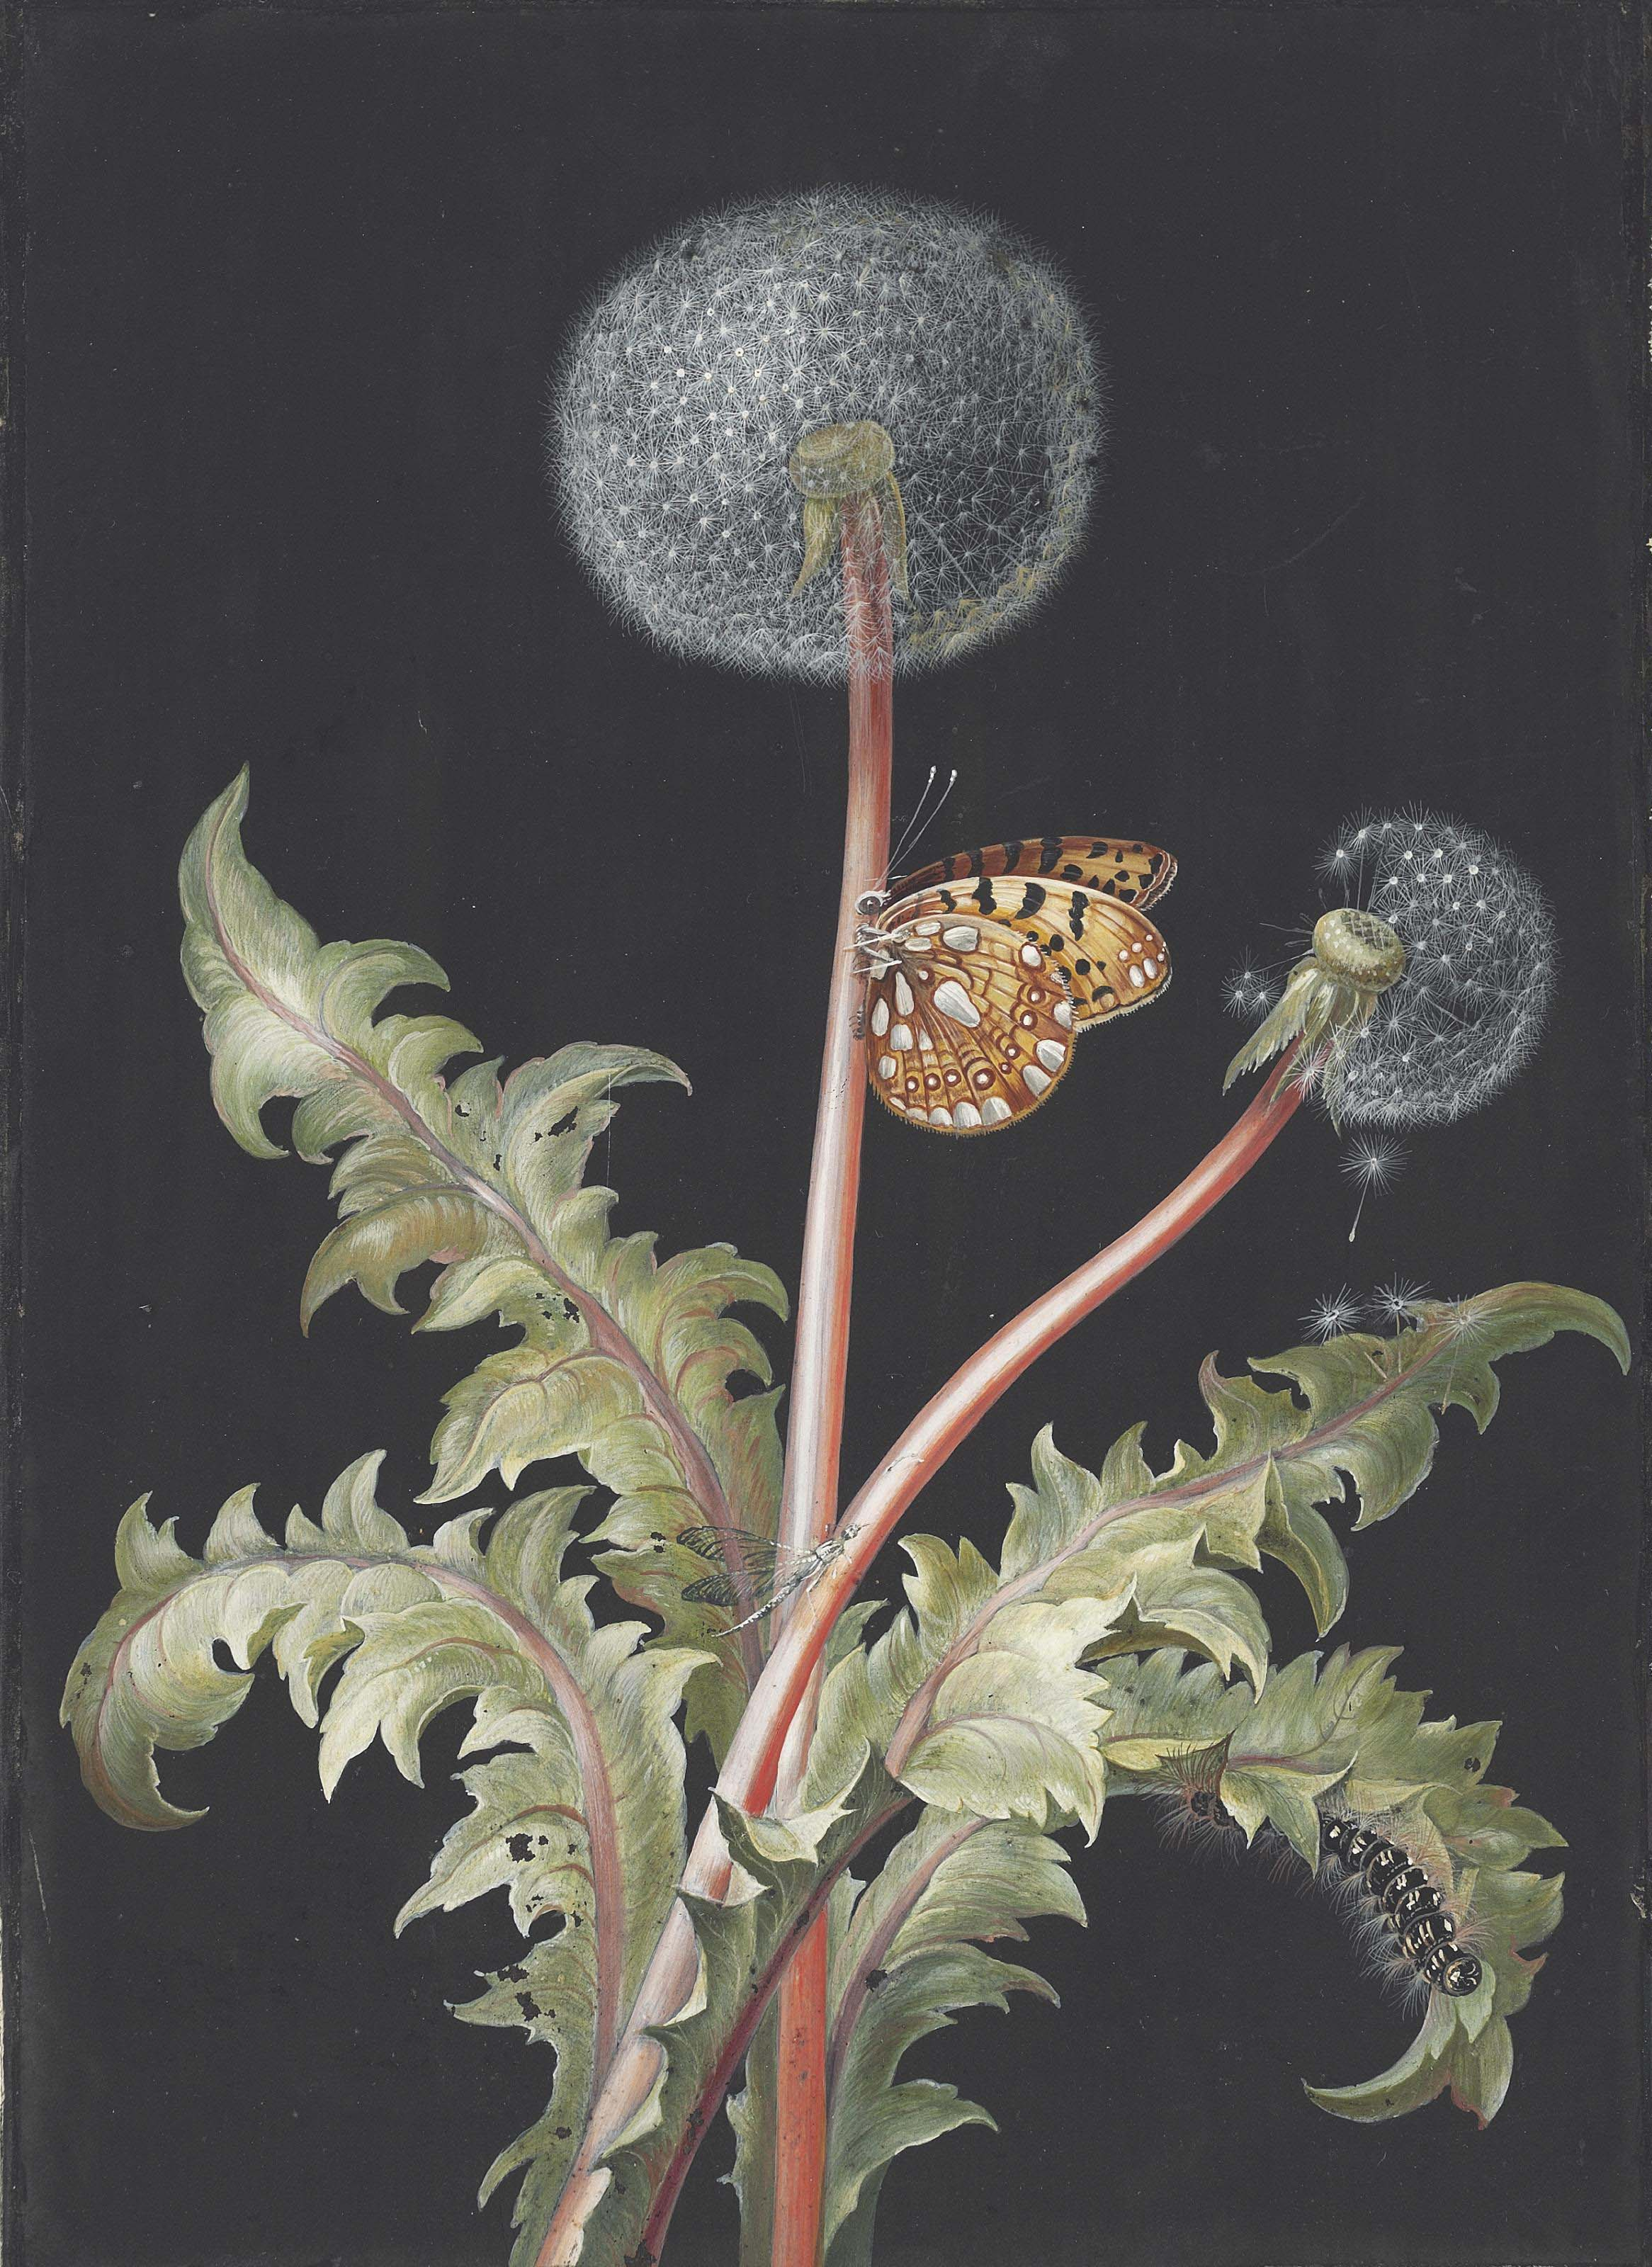 A dandelion plant in seed with a butterfly, dragonfly and caterpillar